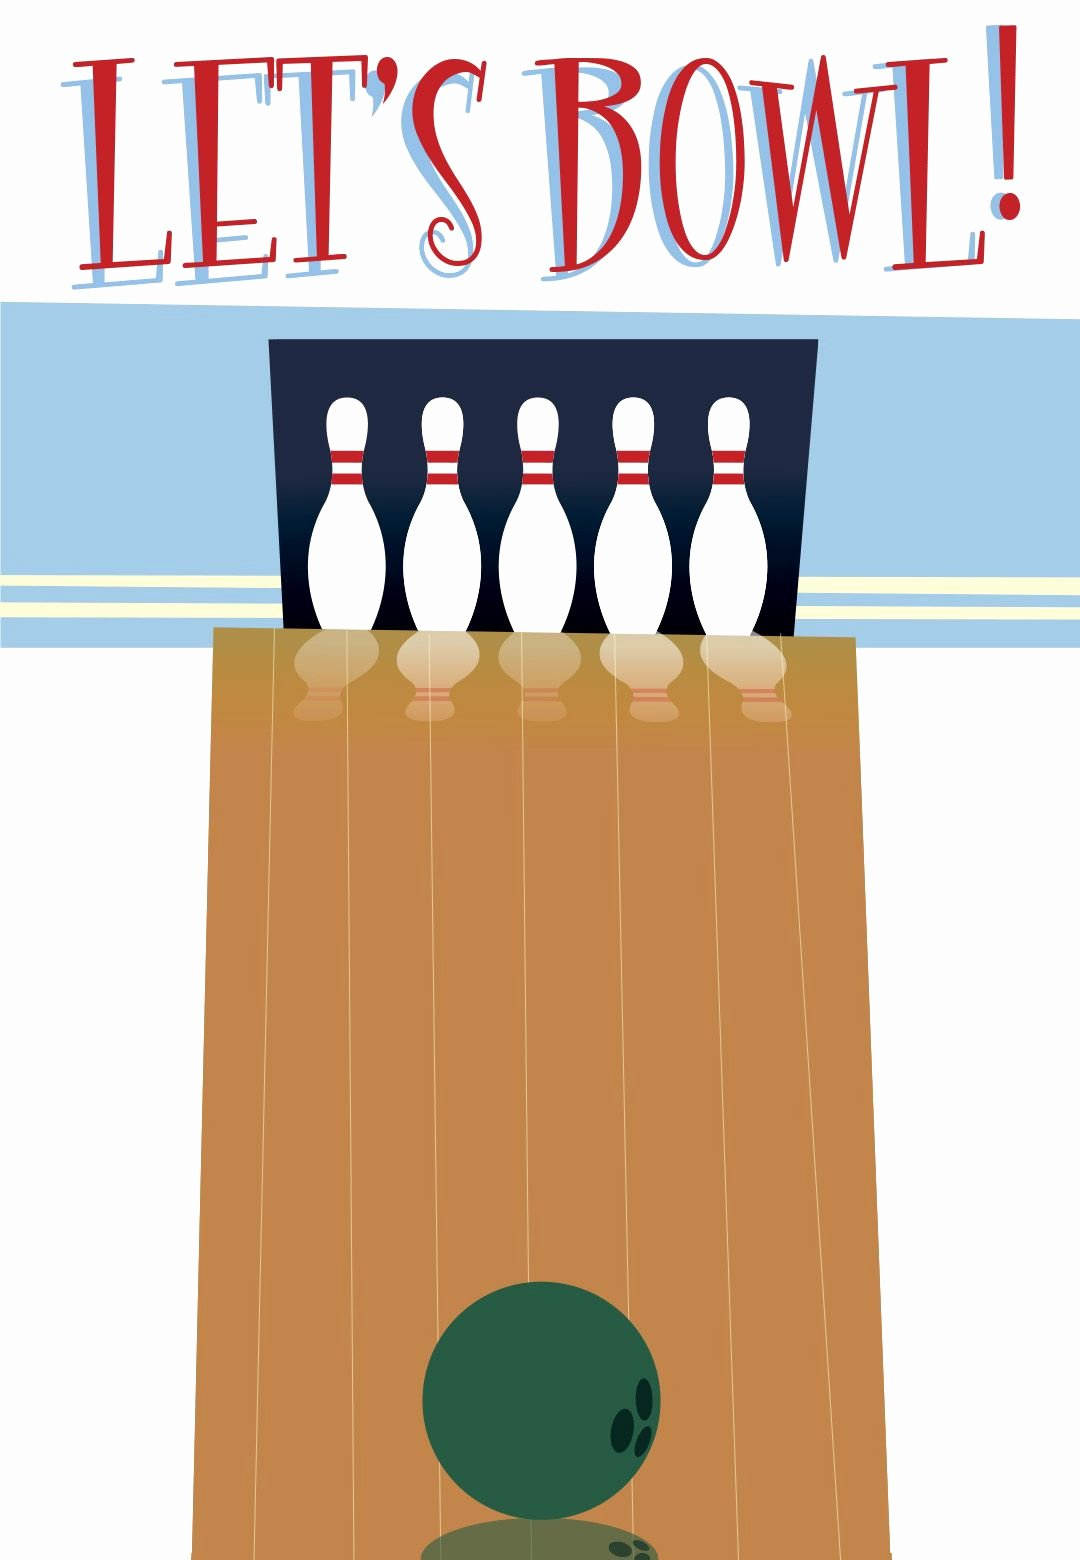 Bowling Party Invitations Templates Free Unique Free Printable Bowling Party Invitation Super Cute for tournaments and Birthday Parties